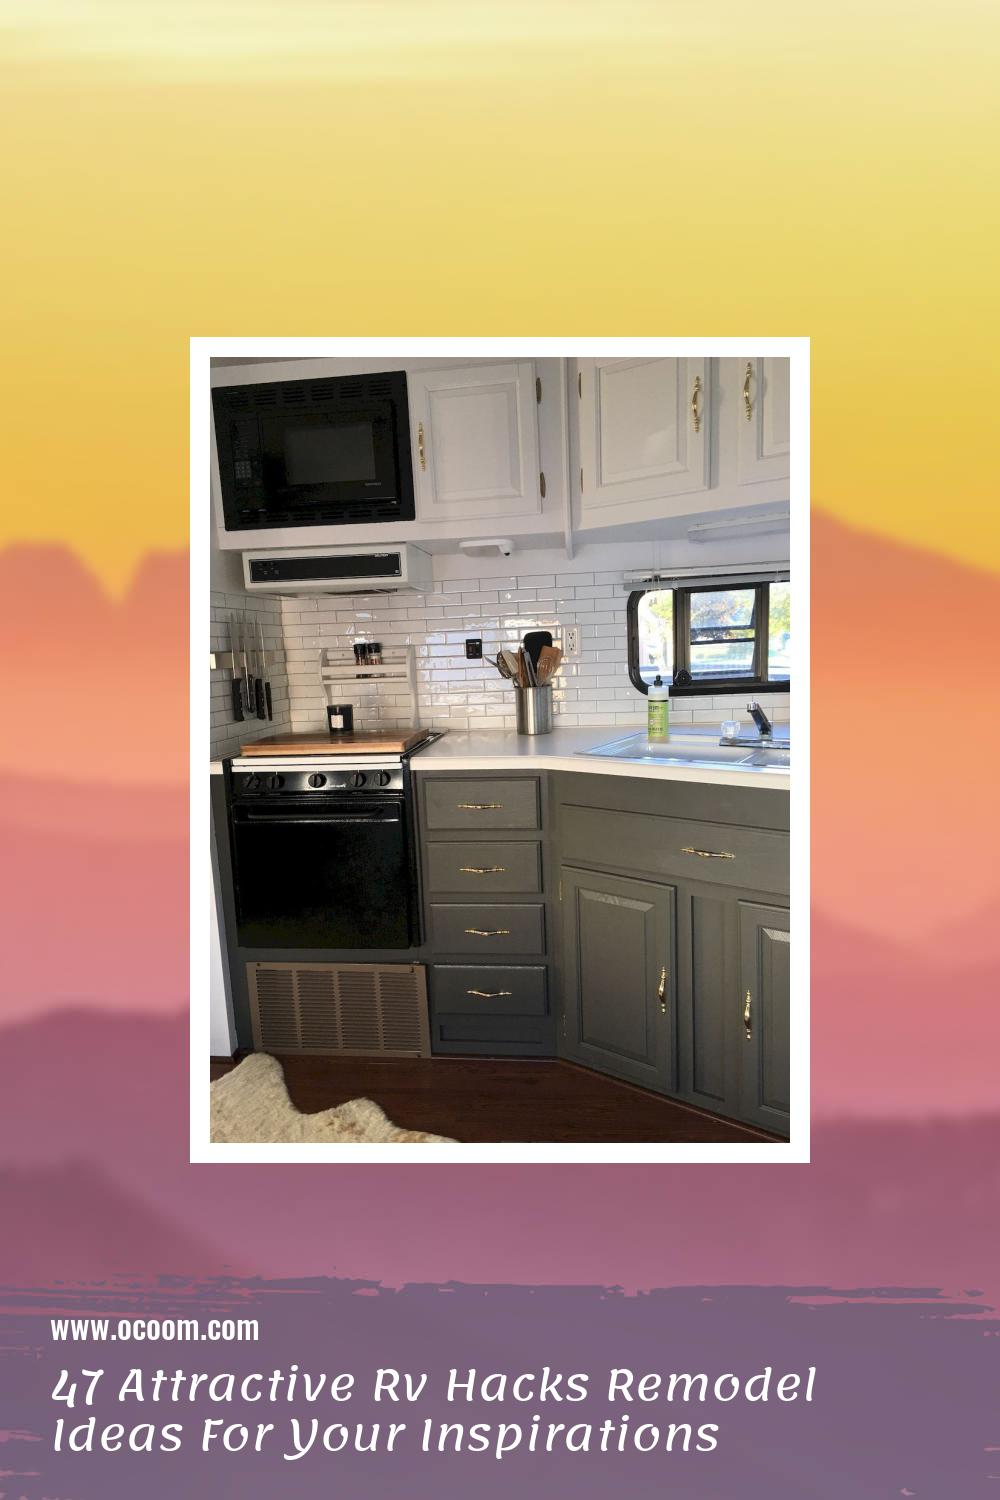 47 Attractive Rv Hacks Remodel Ideas For Your Inspirations 15